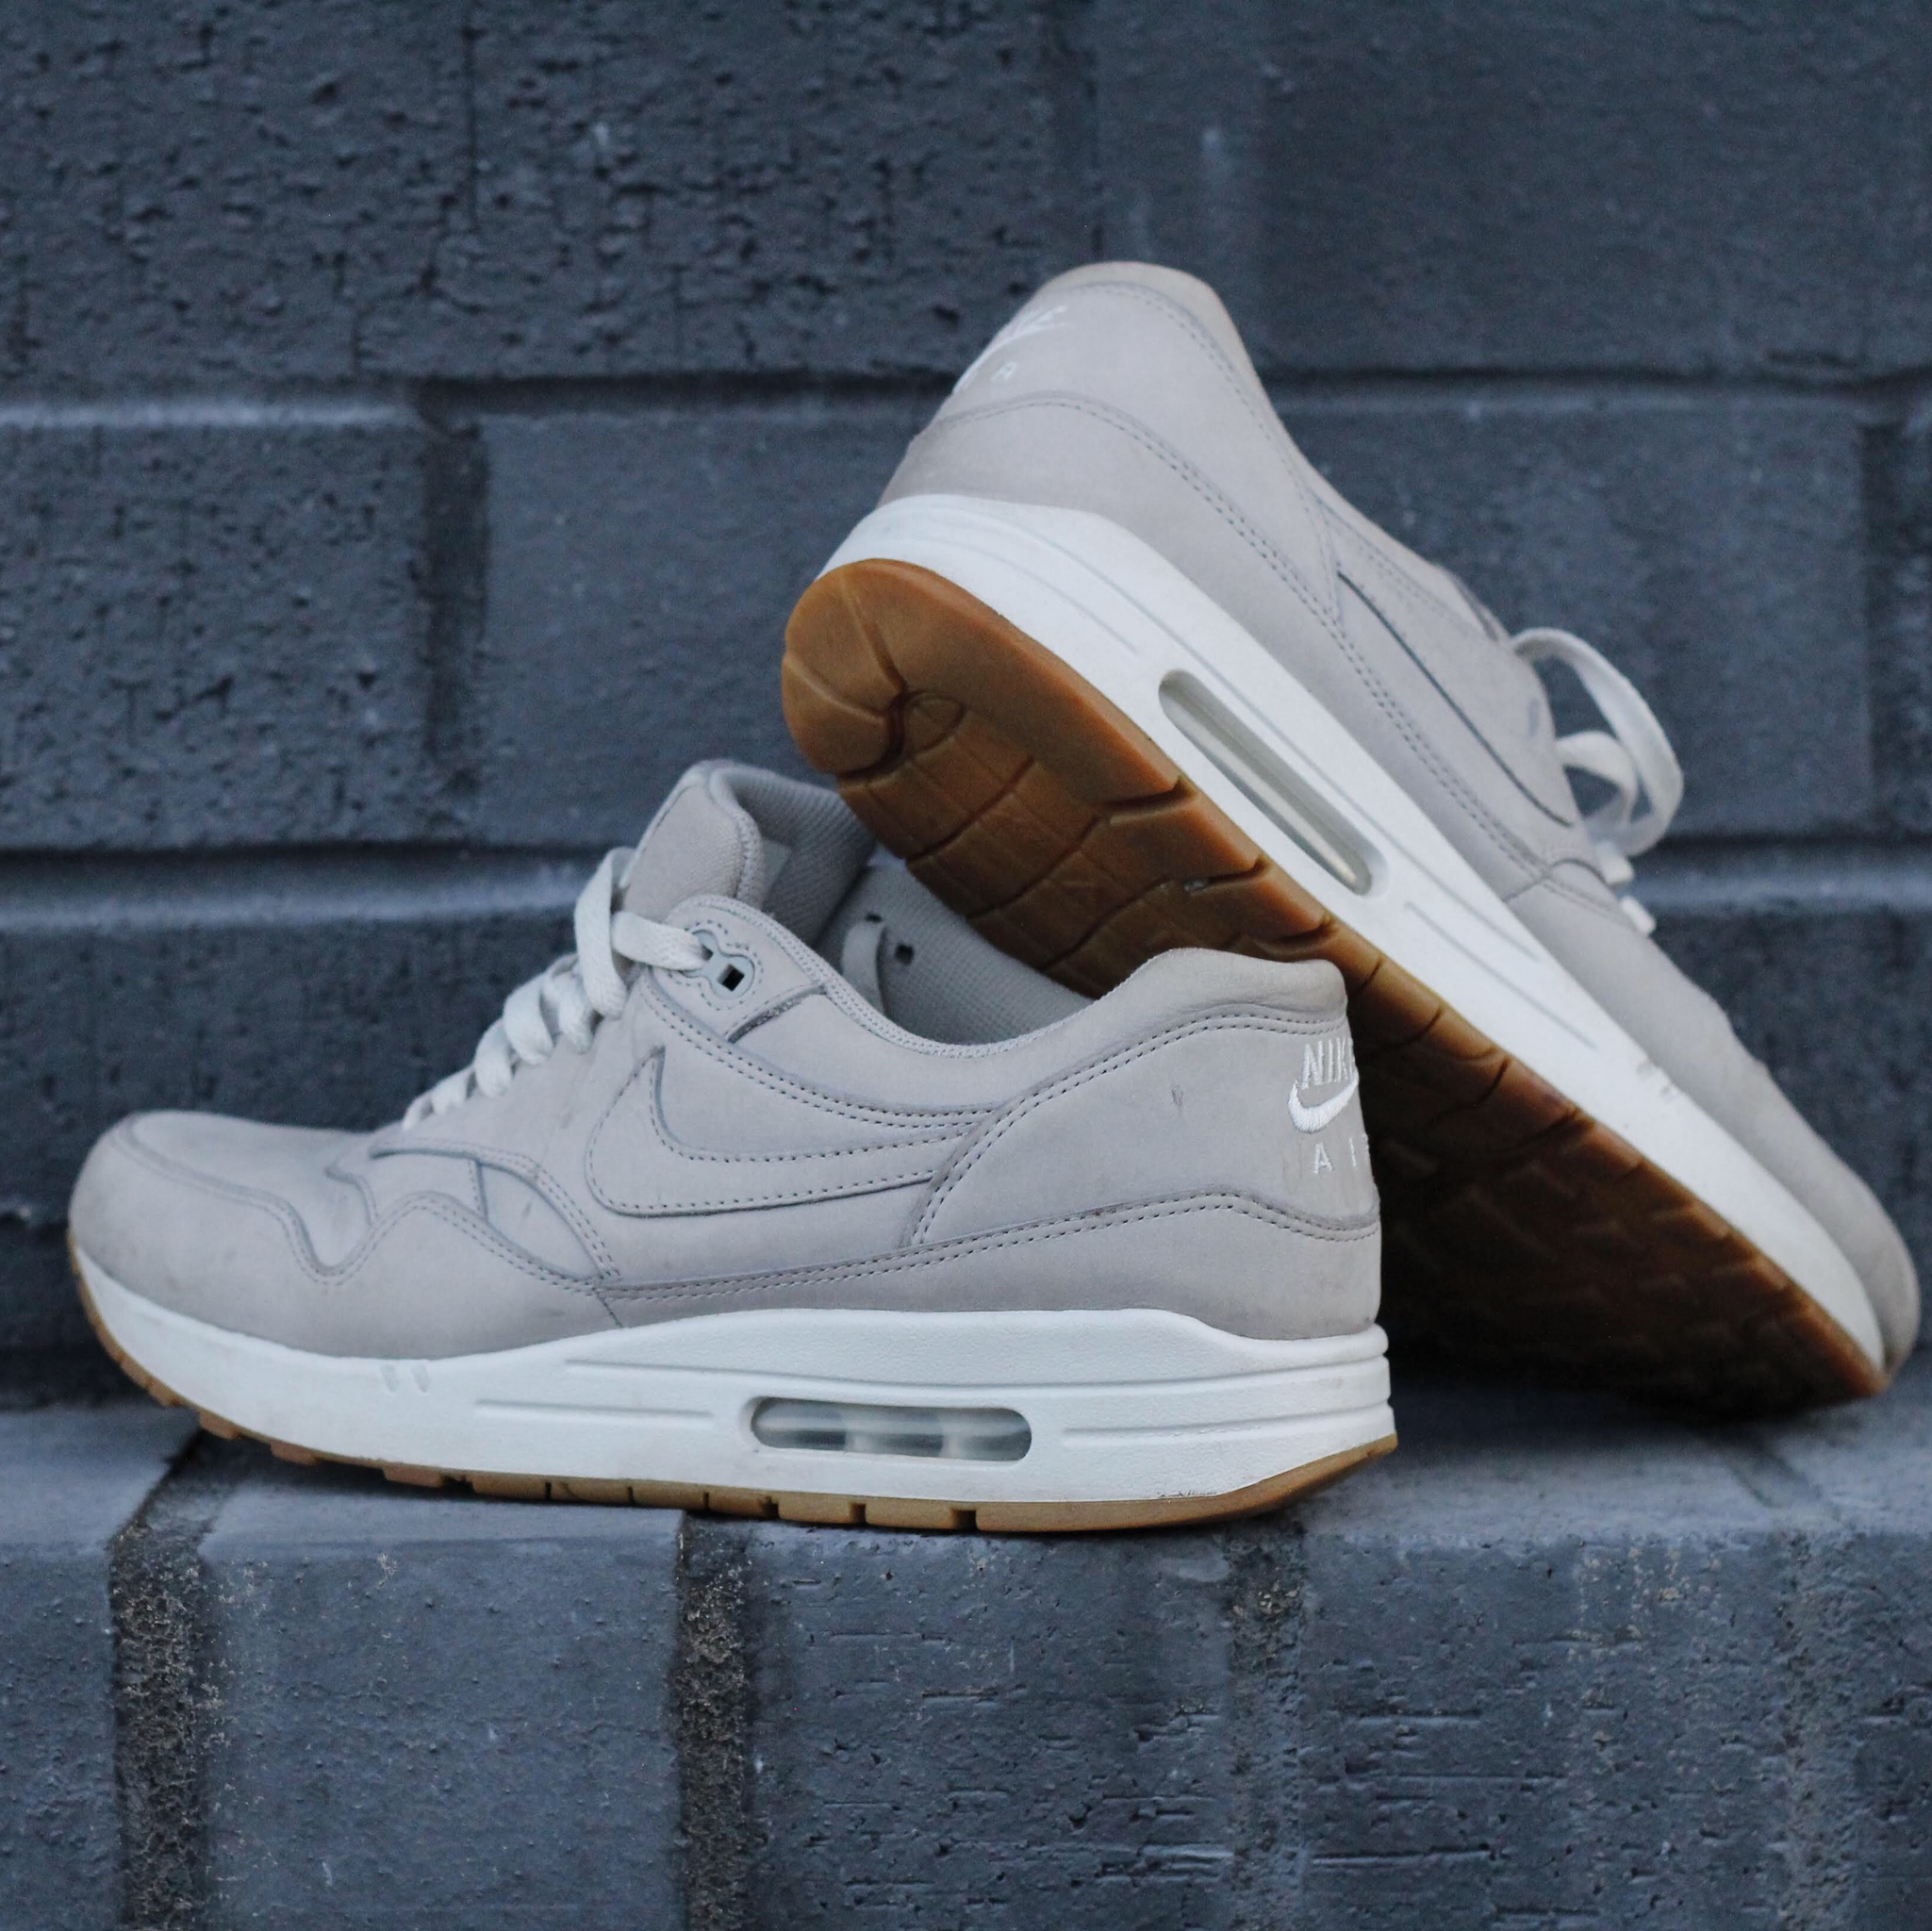 Nike Air Max 1 Grey Suede Leather. Men's Size...